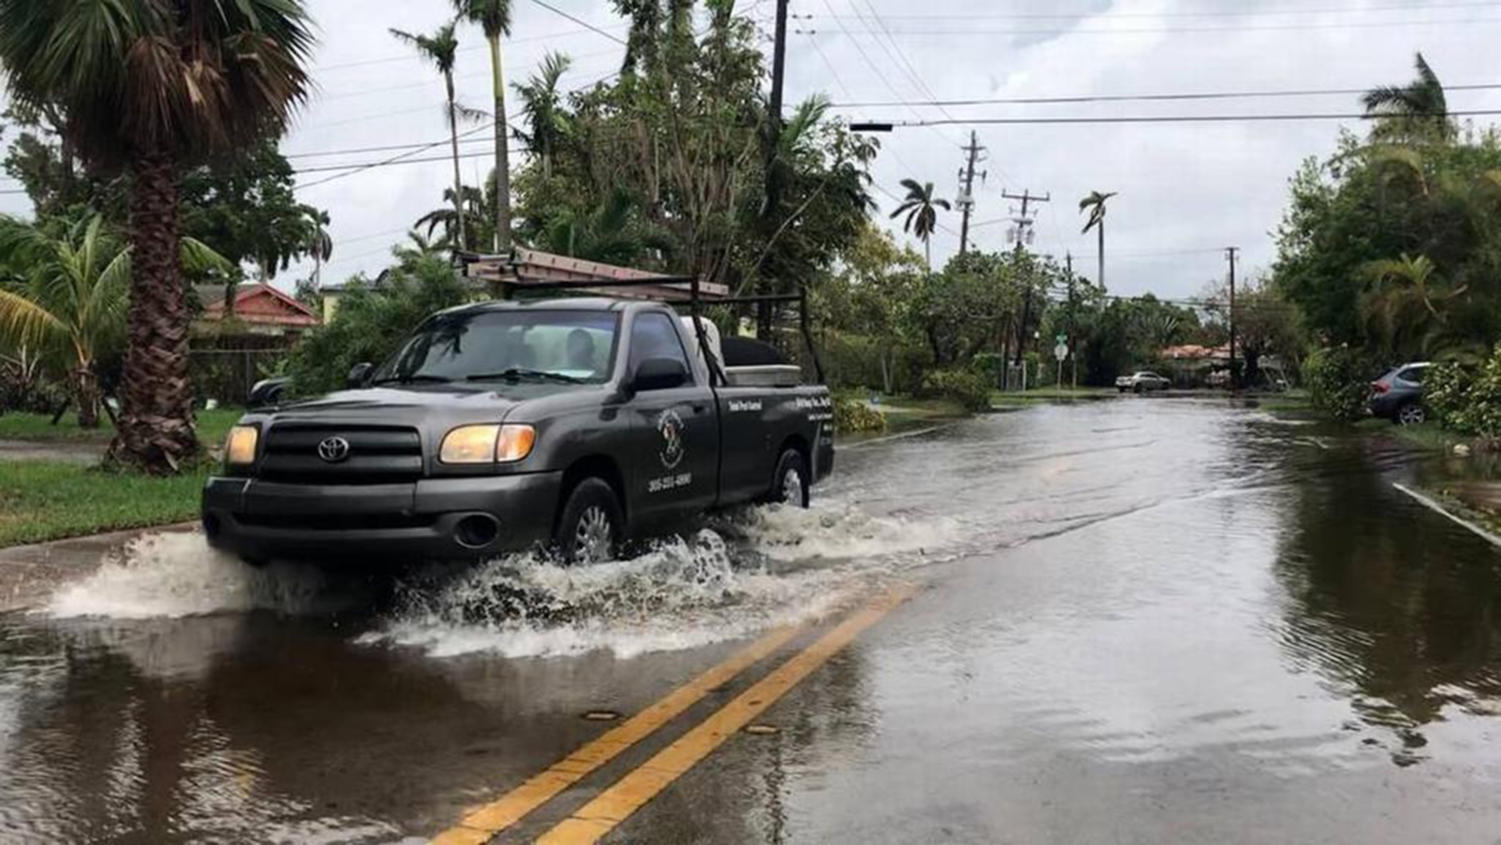 King tide brought high waters that flooded several low-lying streets on Normandy Isle in North Beach on Oct. 5, 2017. New research shows that lower elevation single-family homes, which are more vulnerable to sea level rise, gain value slower than their higher elevation peers.